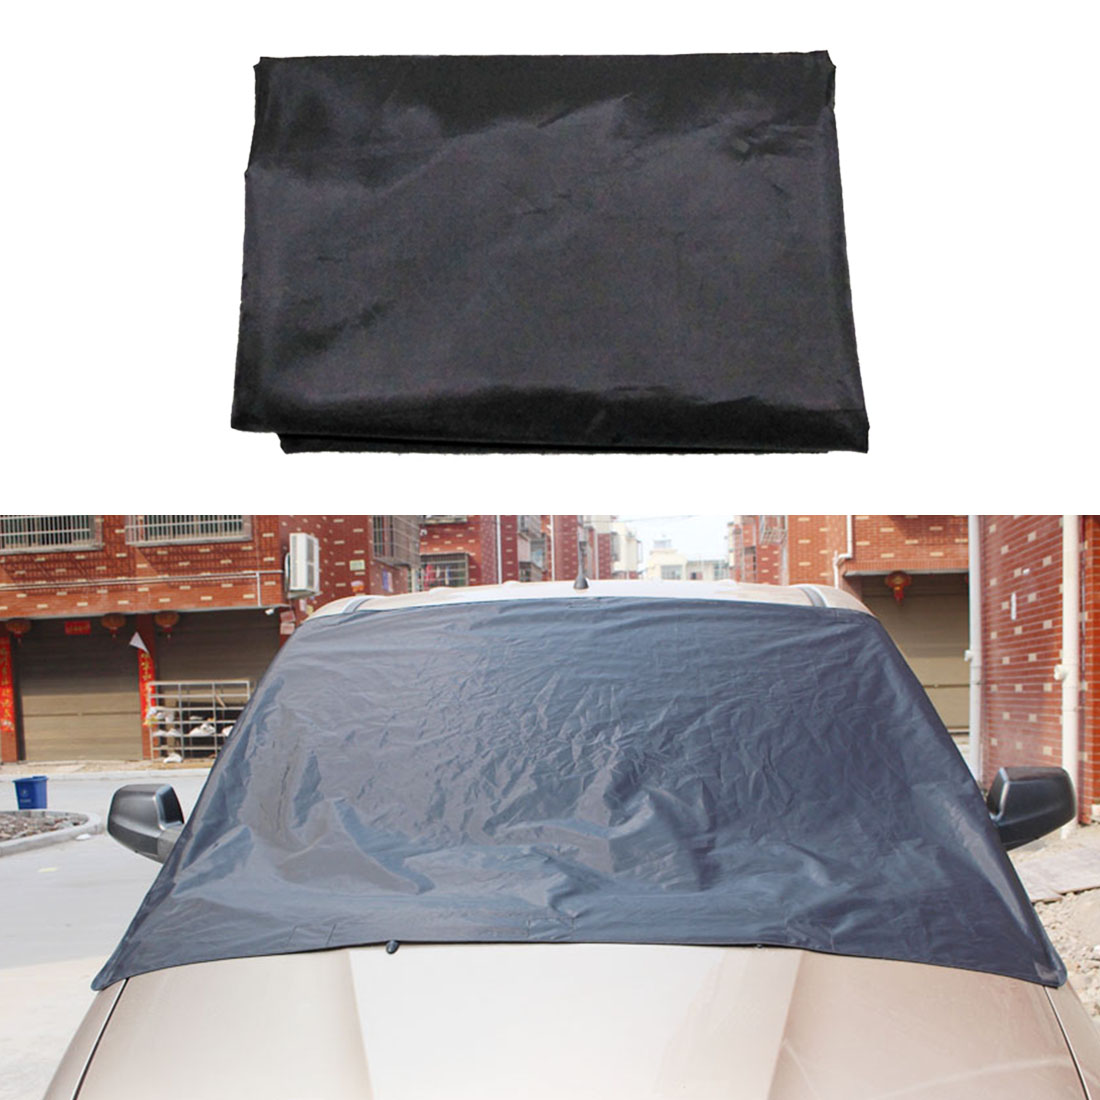 Car Sun Shield Magnet Windshield Cover Snow Ice Frost Freeze Protector Black Silver For VW /BMW /Honda /Toyota Dewtreetali